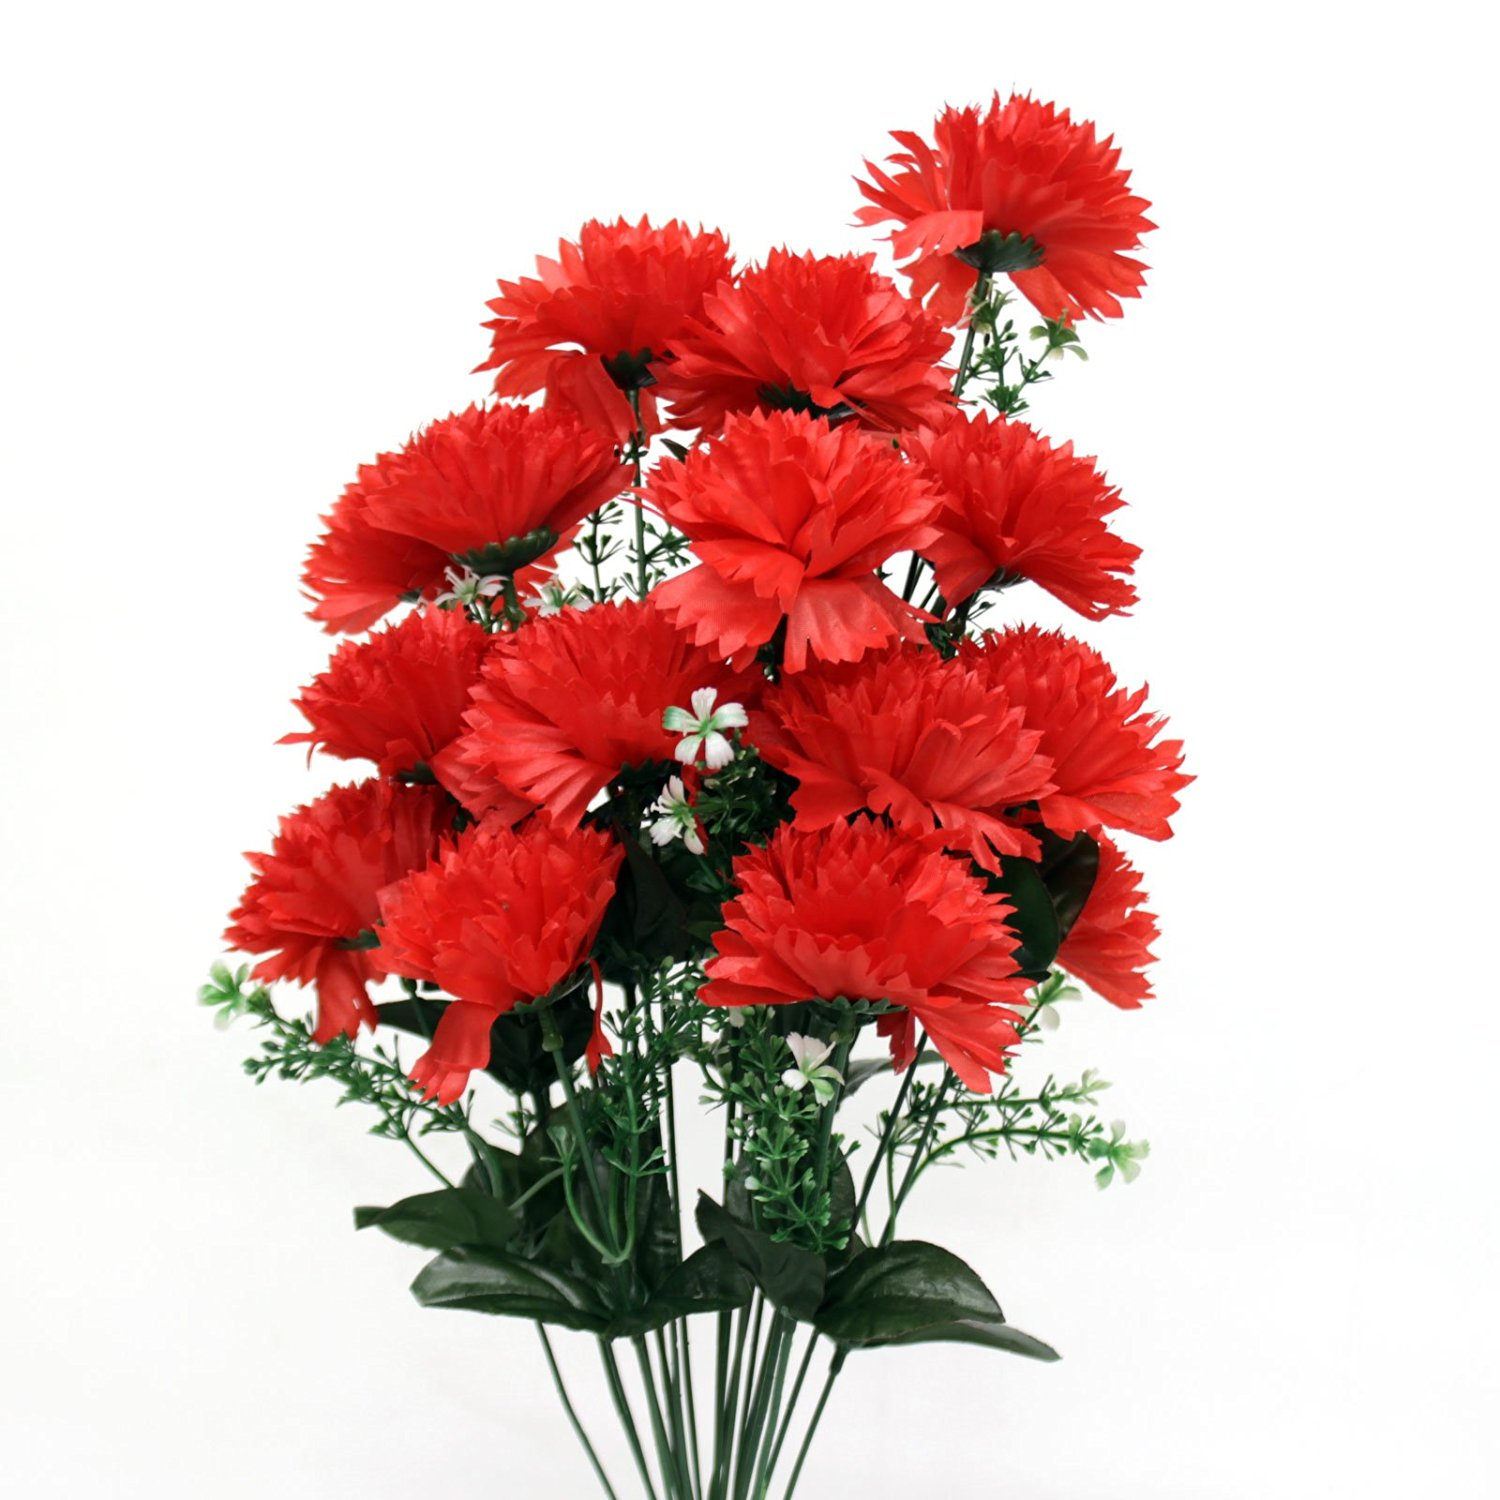 Cheap Red Flower Bunch Find Red Flower Bunch Deals On Line At